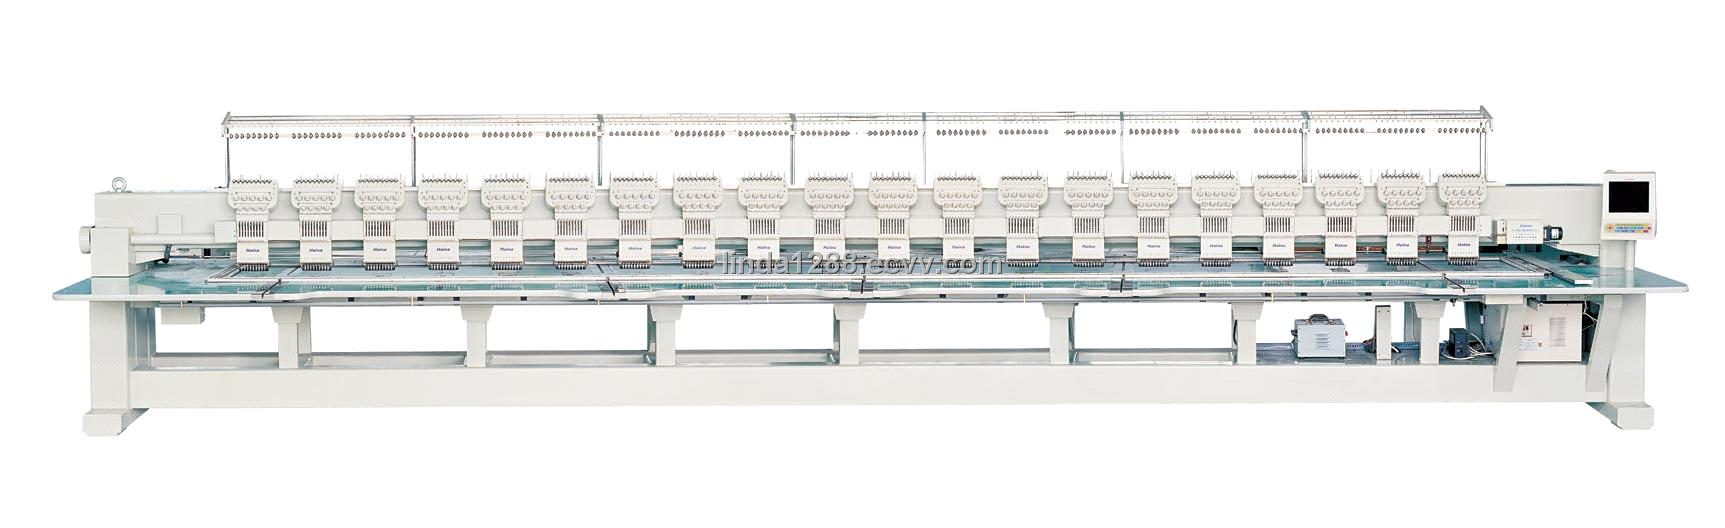 China_Flat_Embroidery_Machine20101291457515